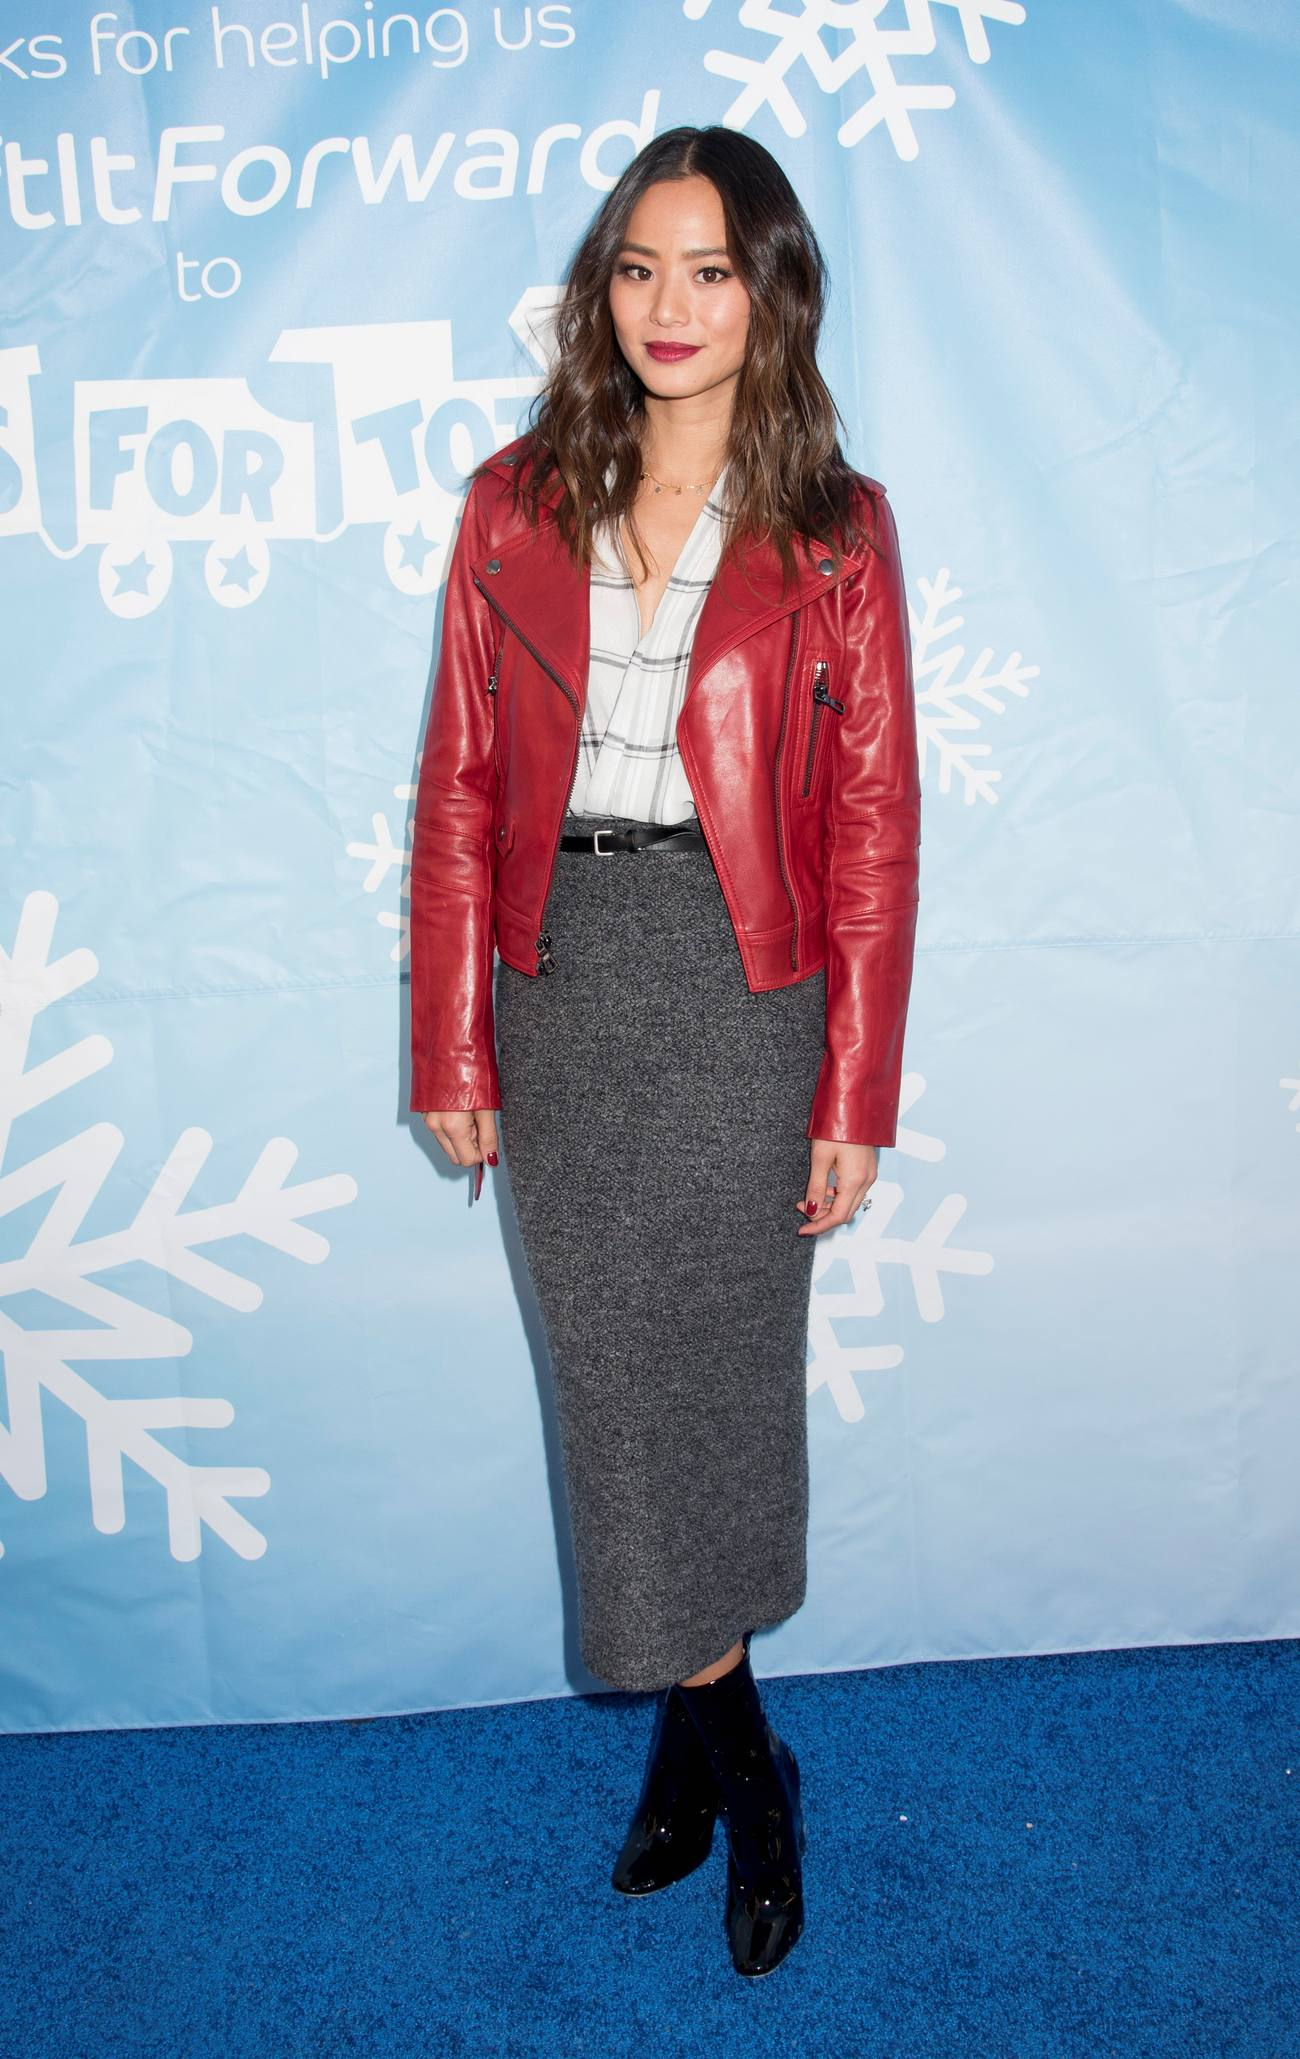 Jamie Chung at Barclaycard CashForward World MasterCard Launch-1